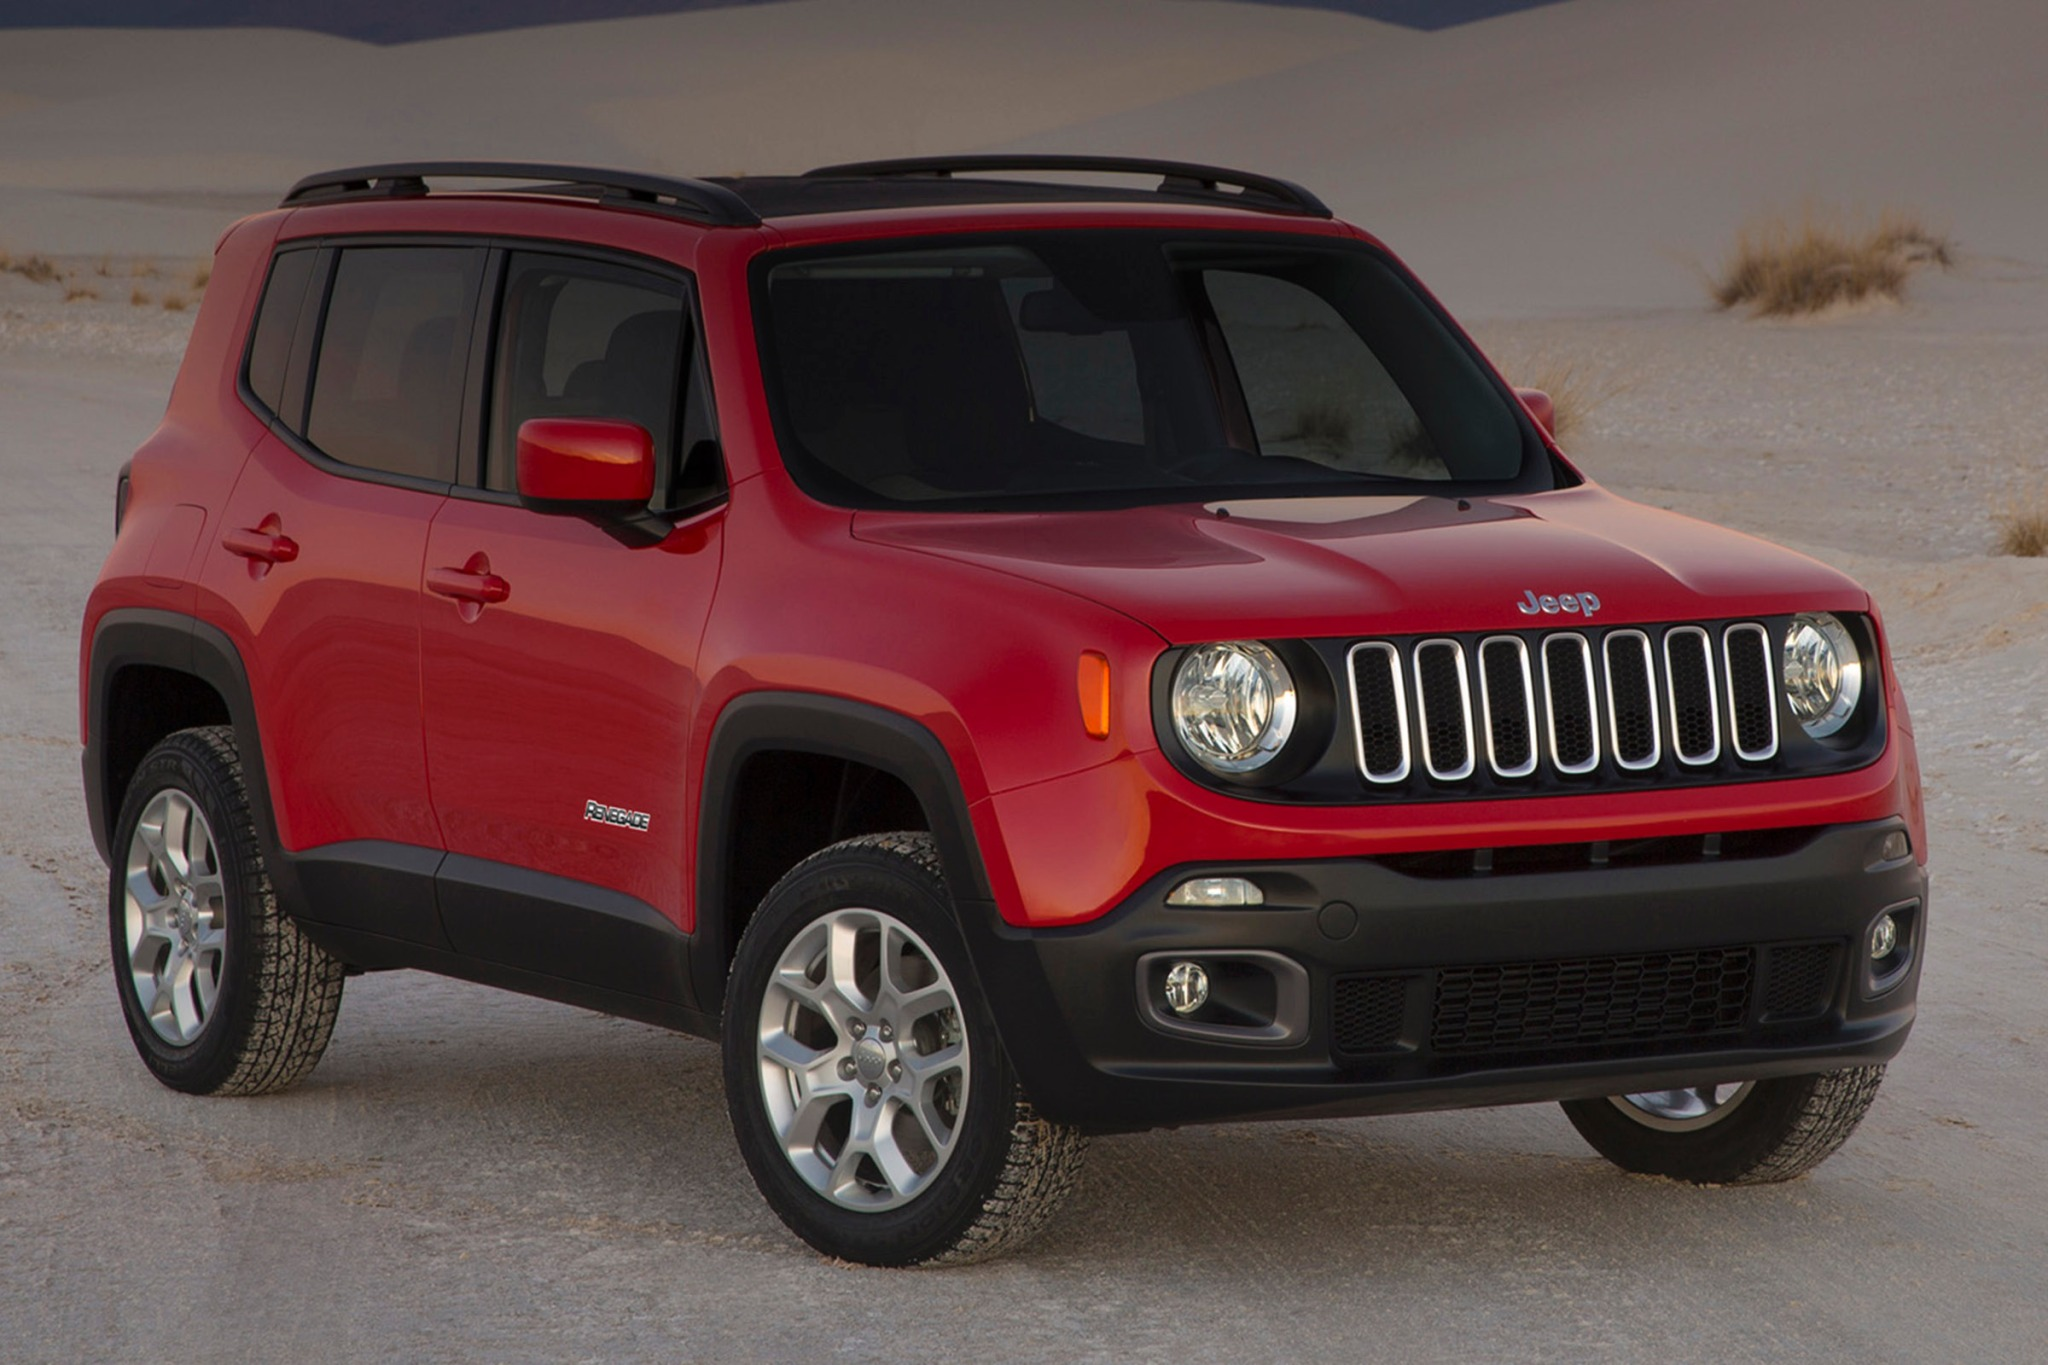 2015 Jeep Renegade Sport Fwd Vin Number Search